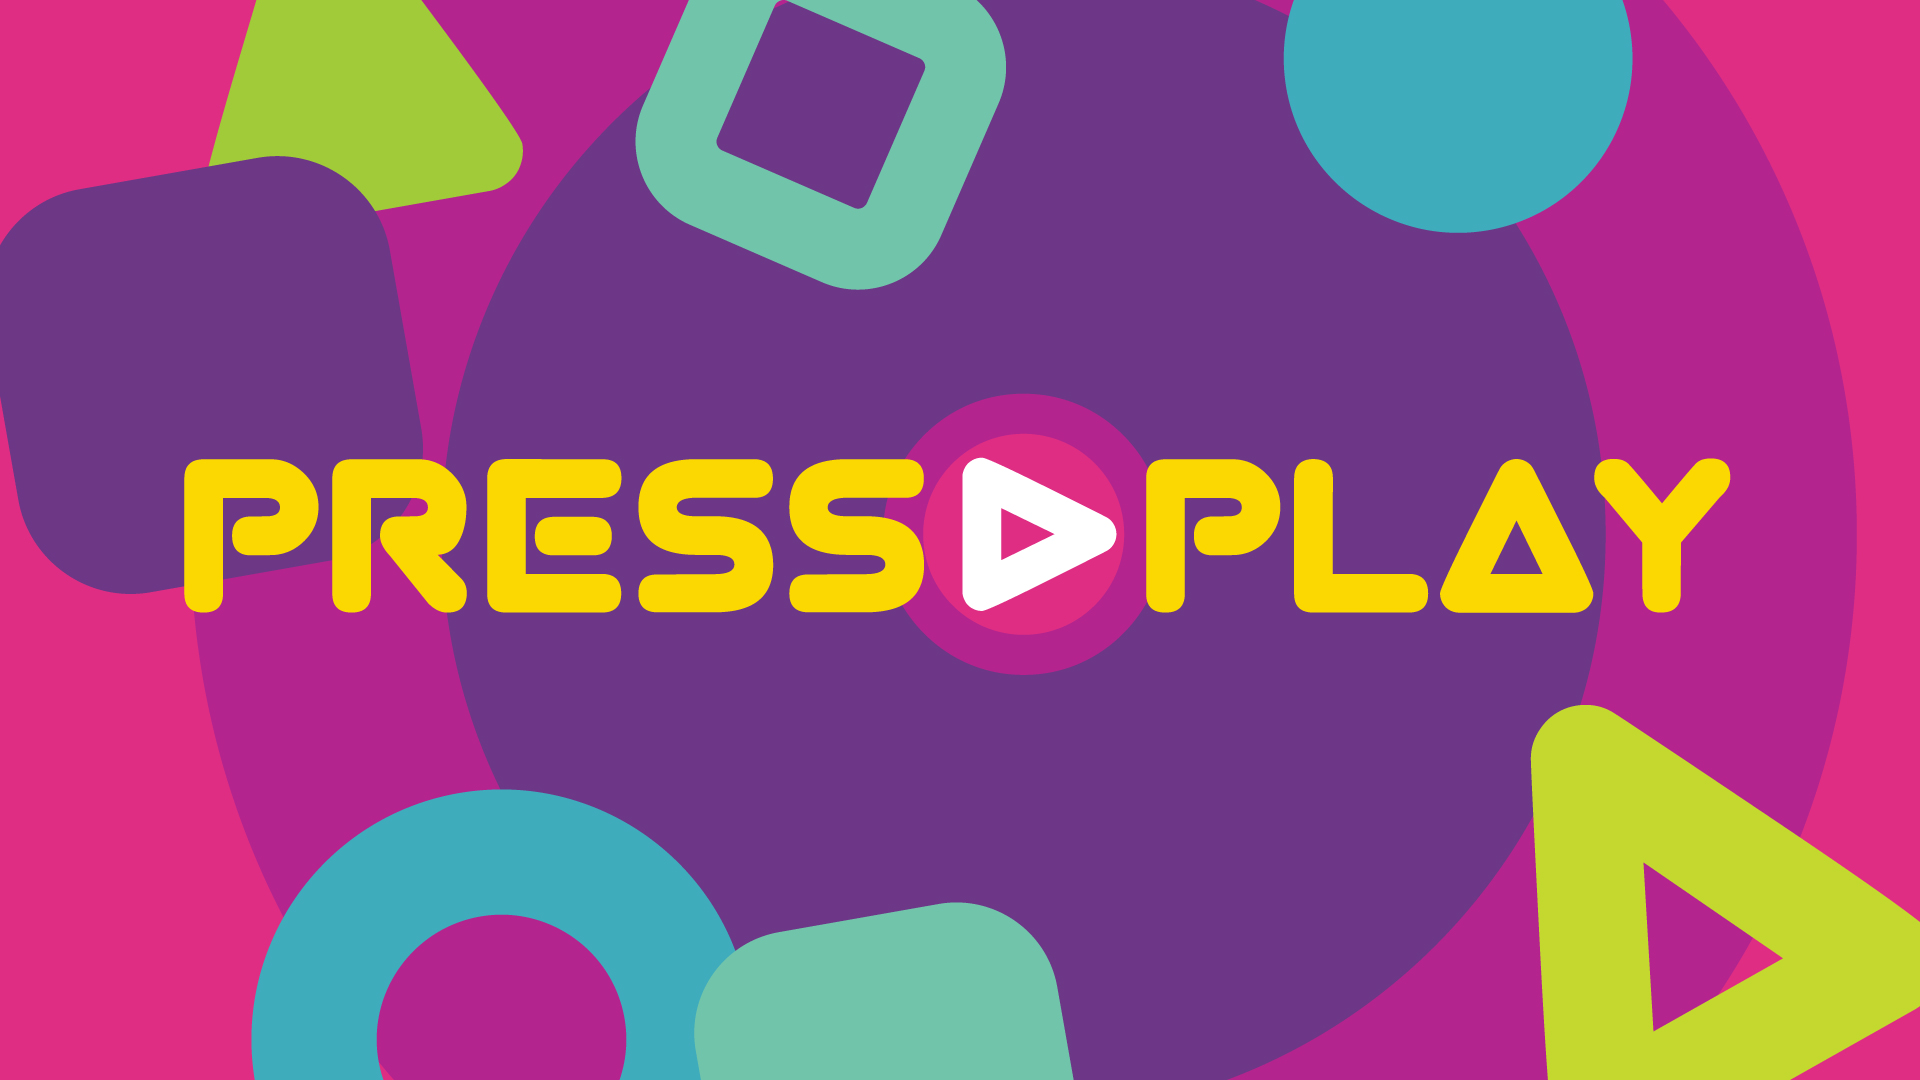 Our ArkPark theme for June, Press Play.